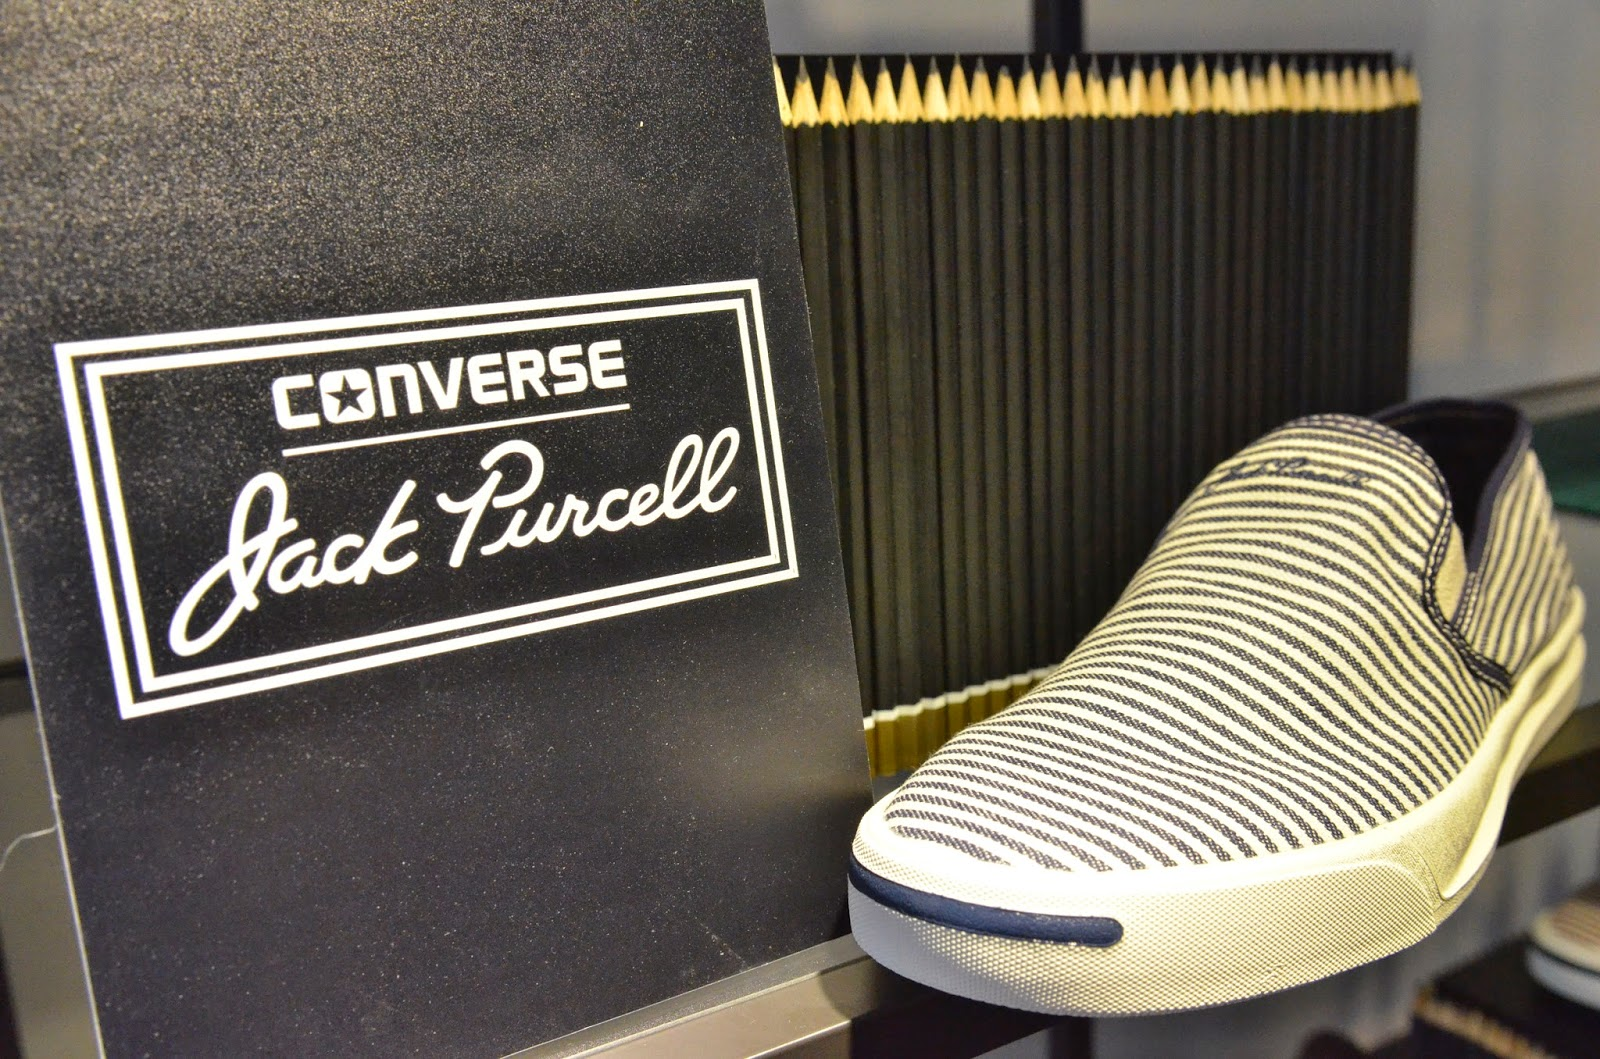 2fa0e441c1e520  LAUNCH  Jack Purcell X Offday Pop Up Store Collaboration   Jalan Telawi